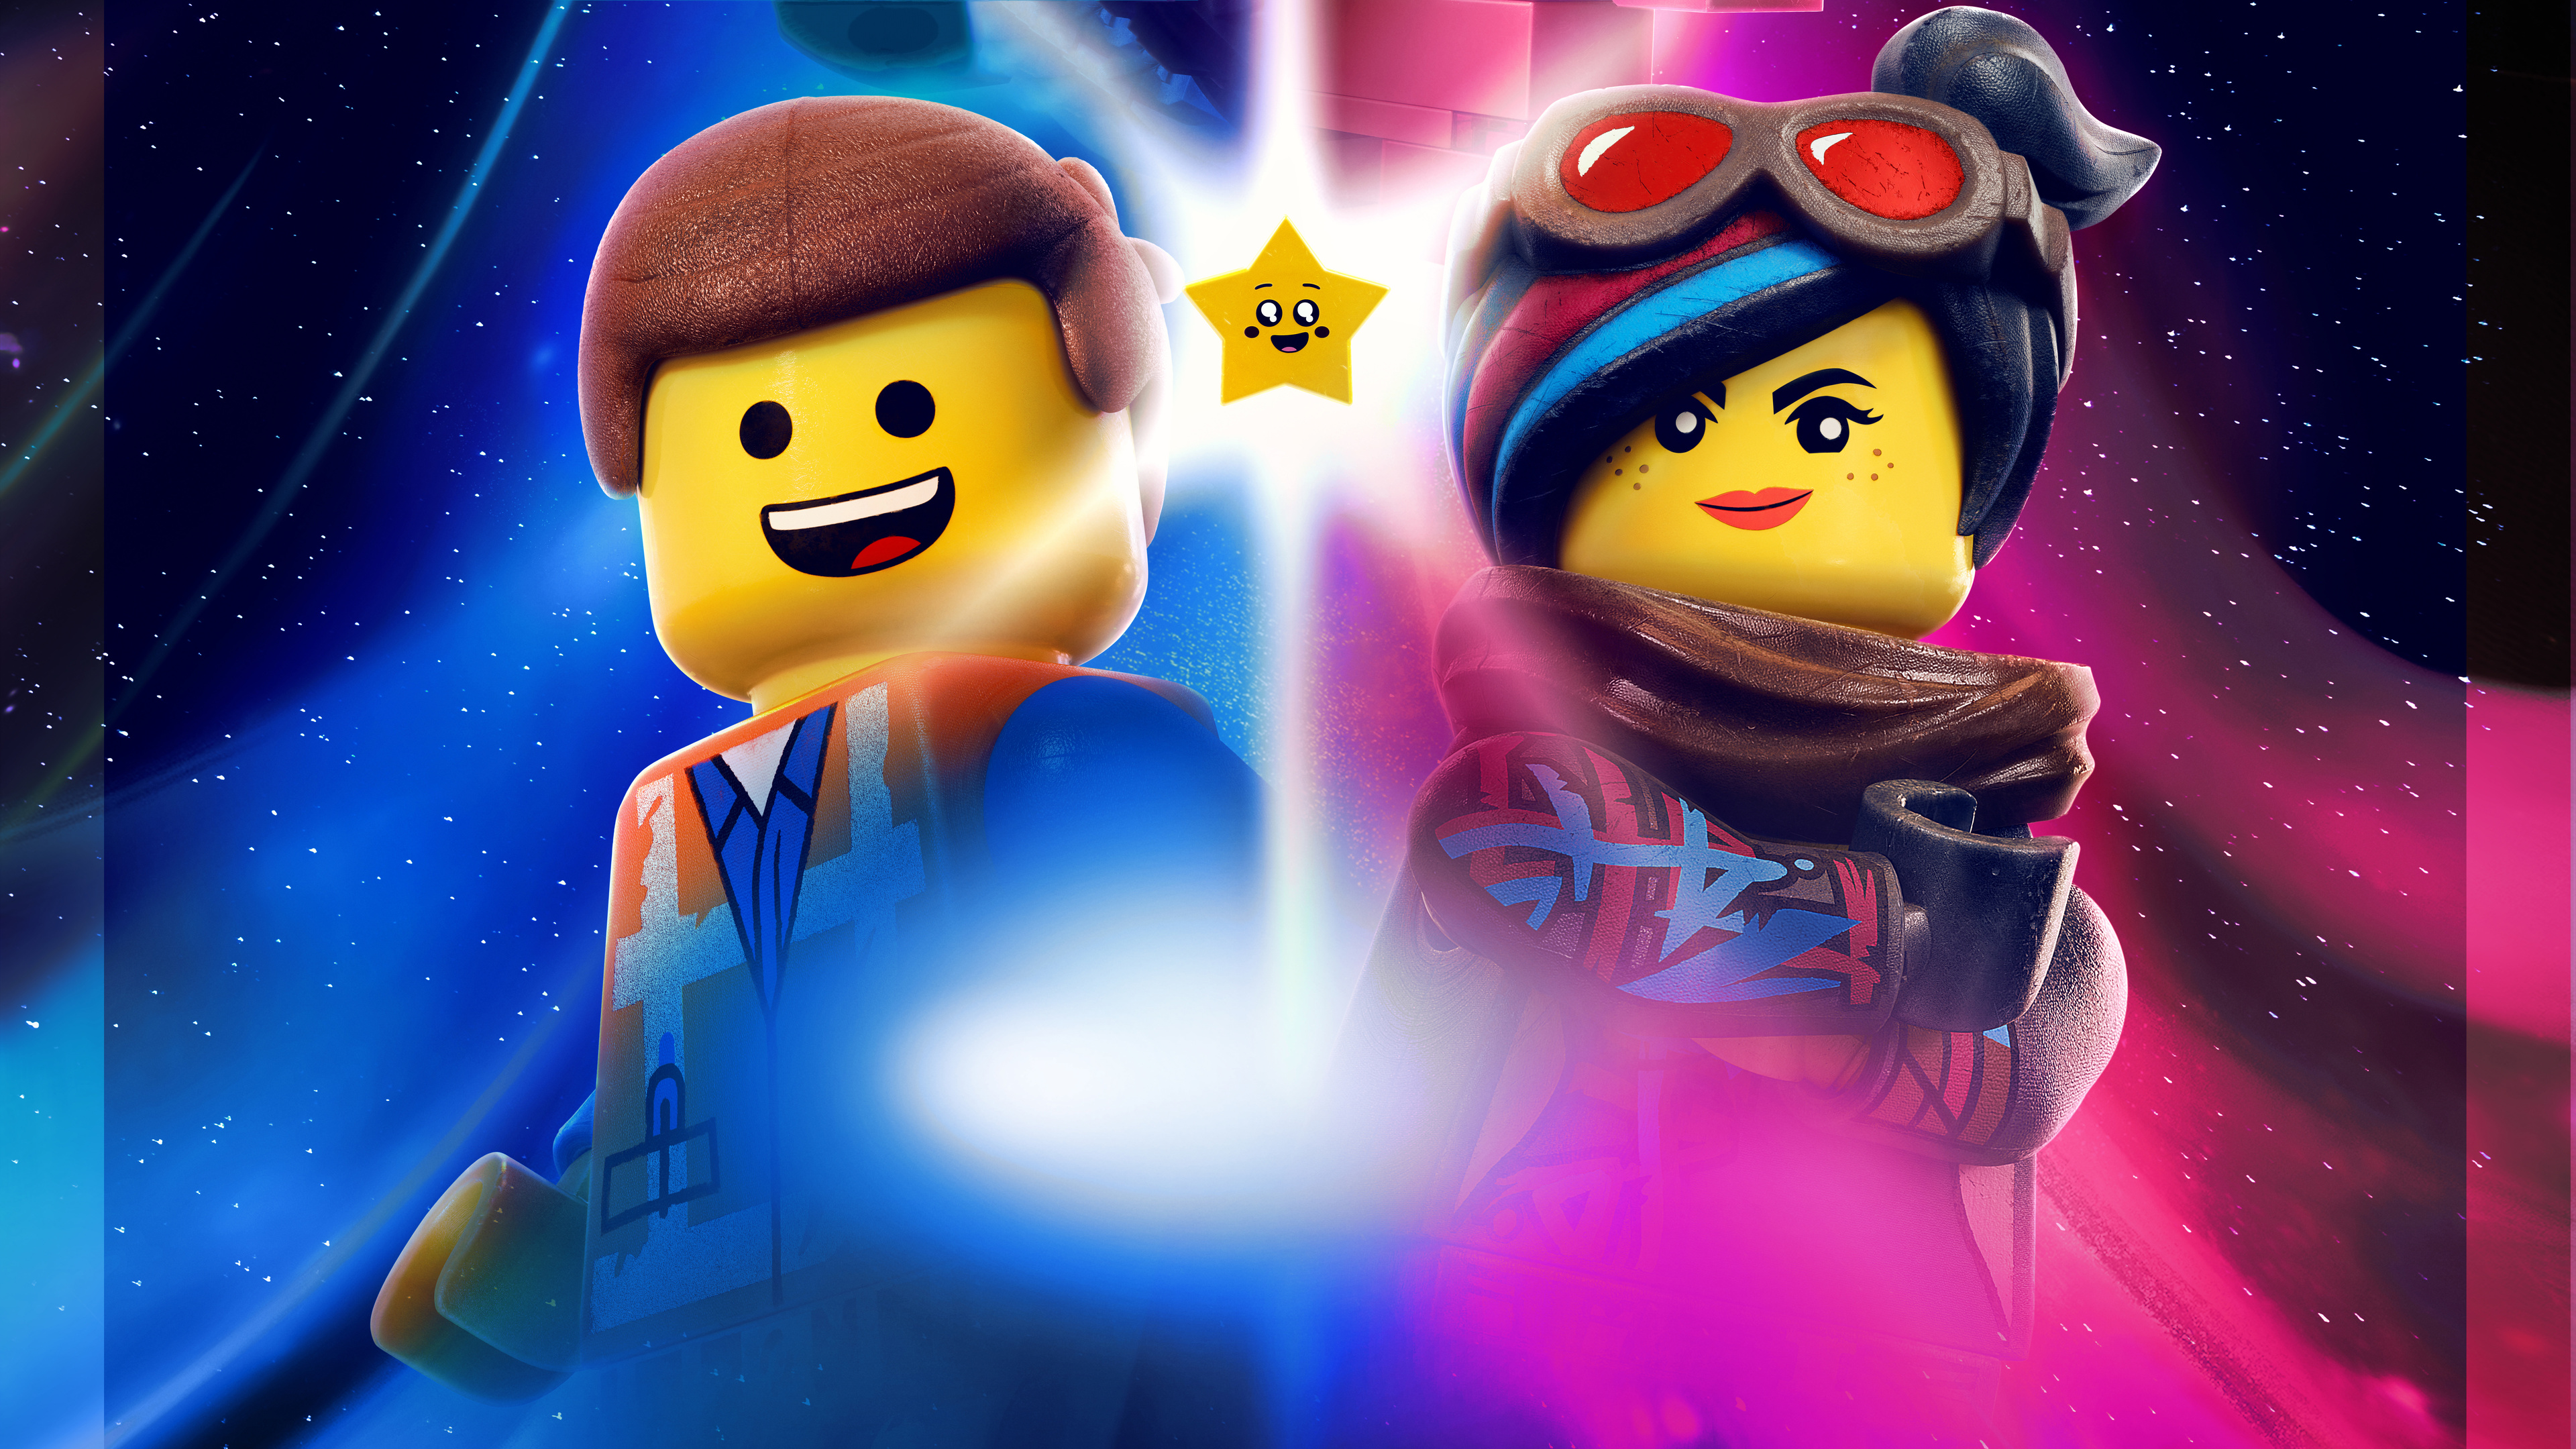 Wallpaper 4k The Lego Movie 2 The Second Part 2019 4k 10k Wallpapers 2019 Movies Wallpapers 4k Wallpapers 5k Wallpapers 8k Wallpapers Animated Movies Wallpapers Hd Wallpapers Lego Wallpapers Movies Wallpapers The Lego Movie